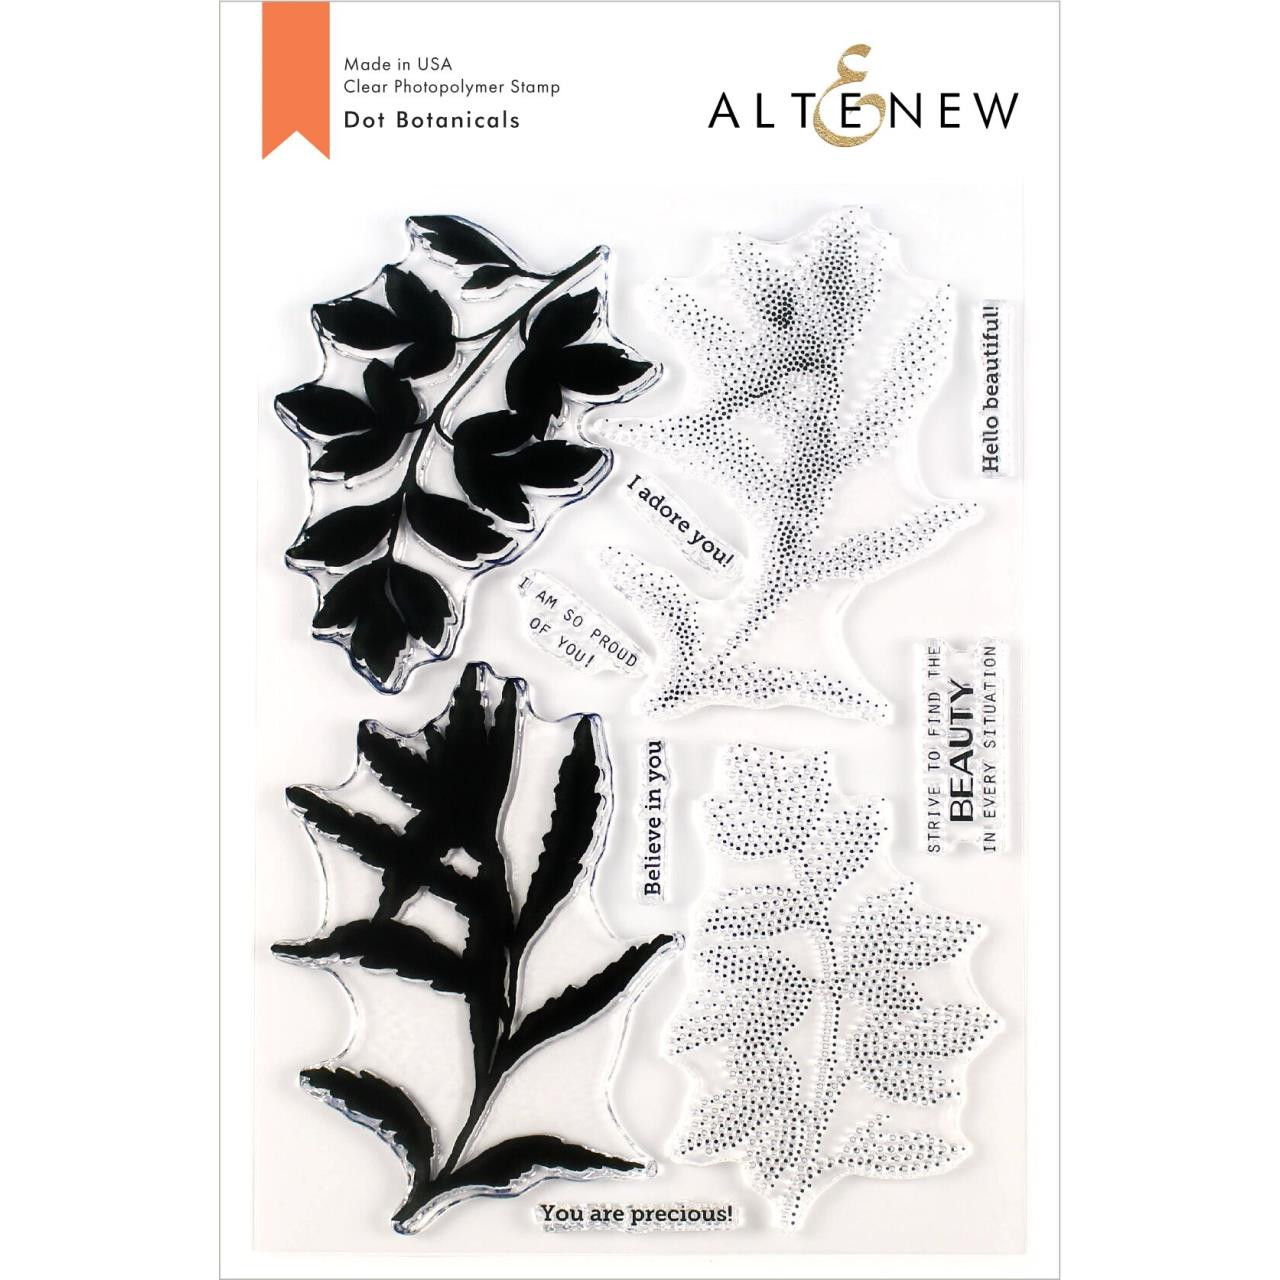 Dot Botanicals, Altenew Clear Stamps - 737787255407